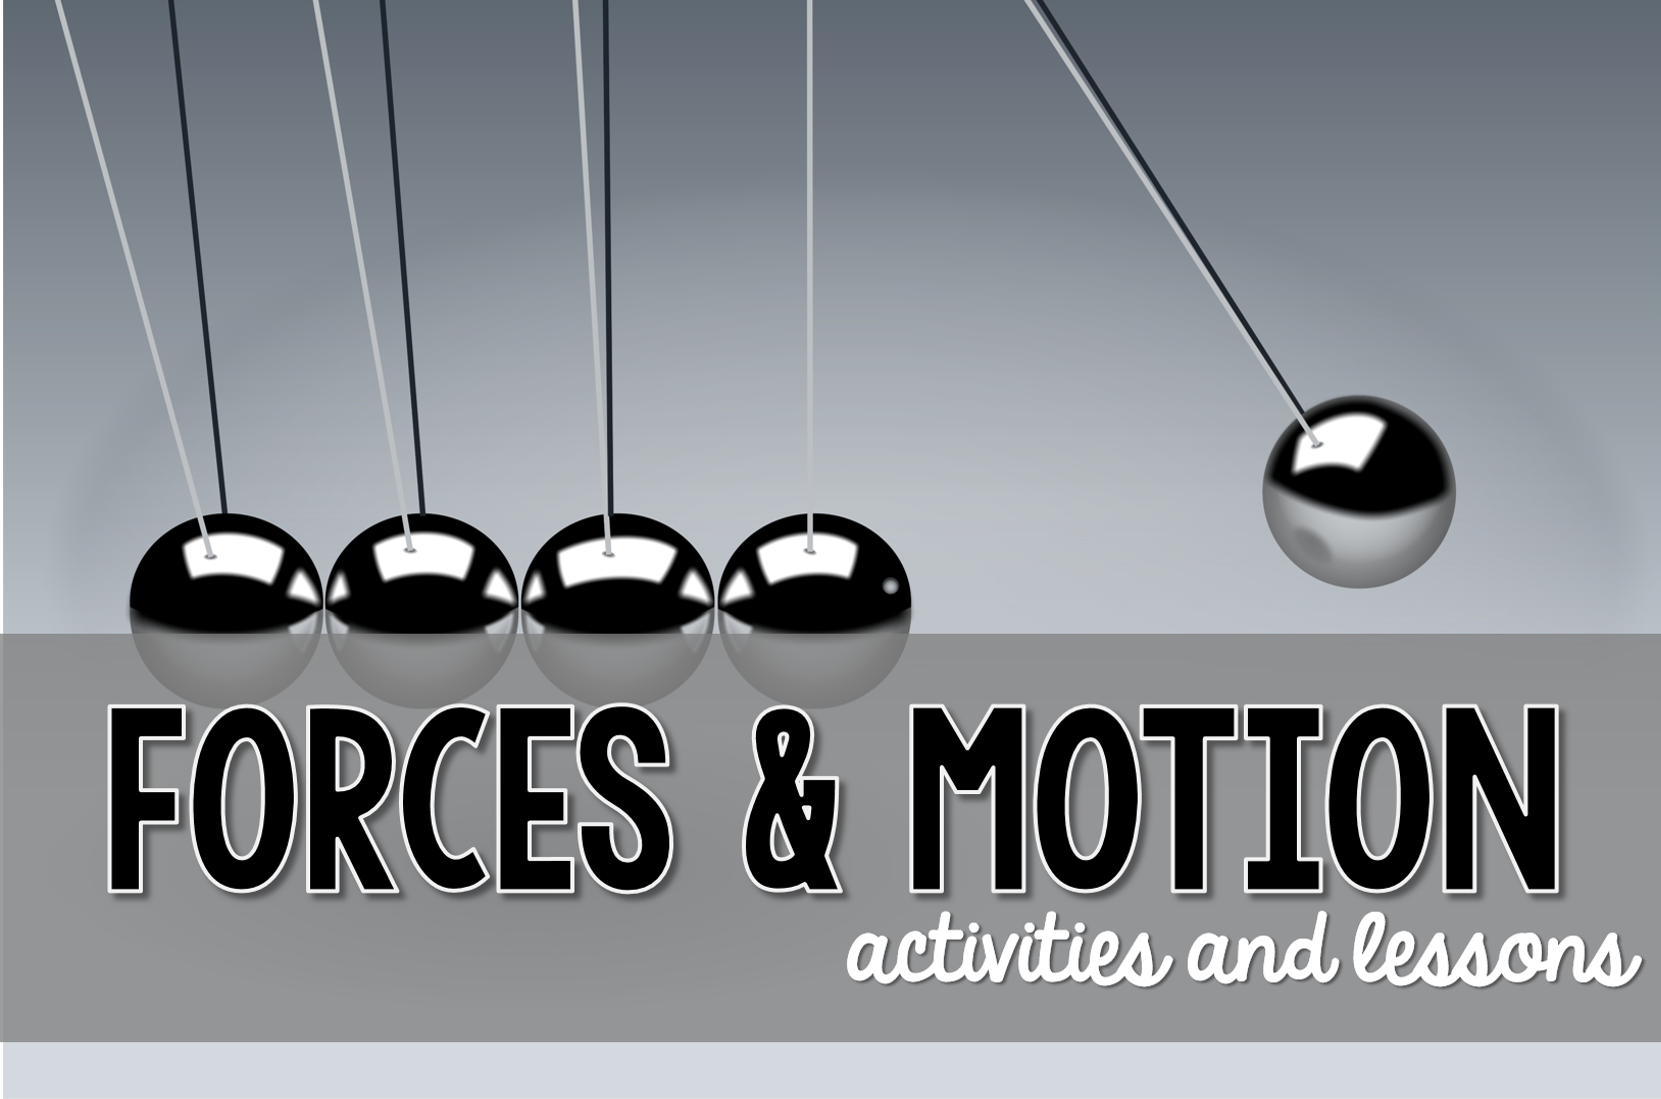 Lessons Activities Resources And Projects For Elementary